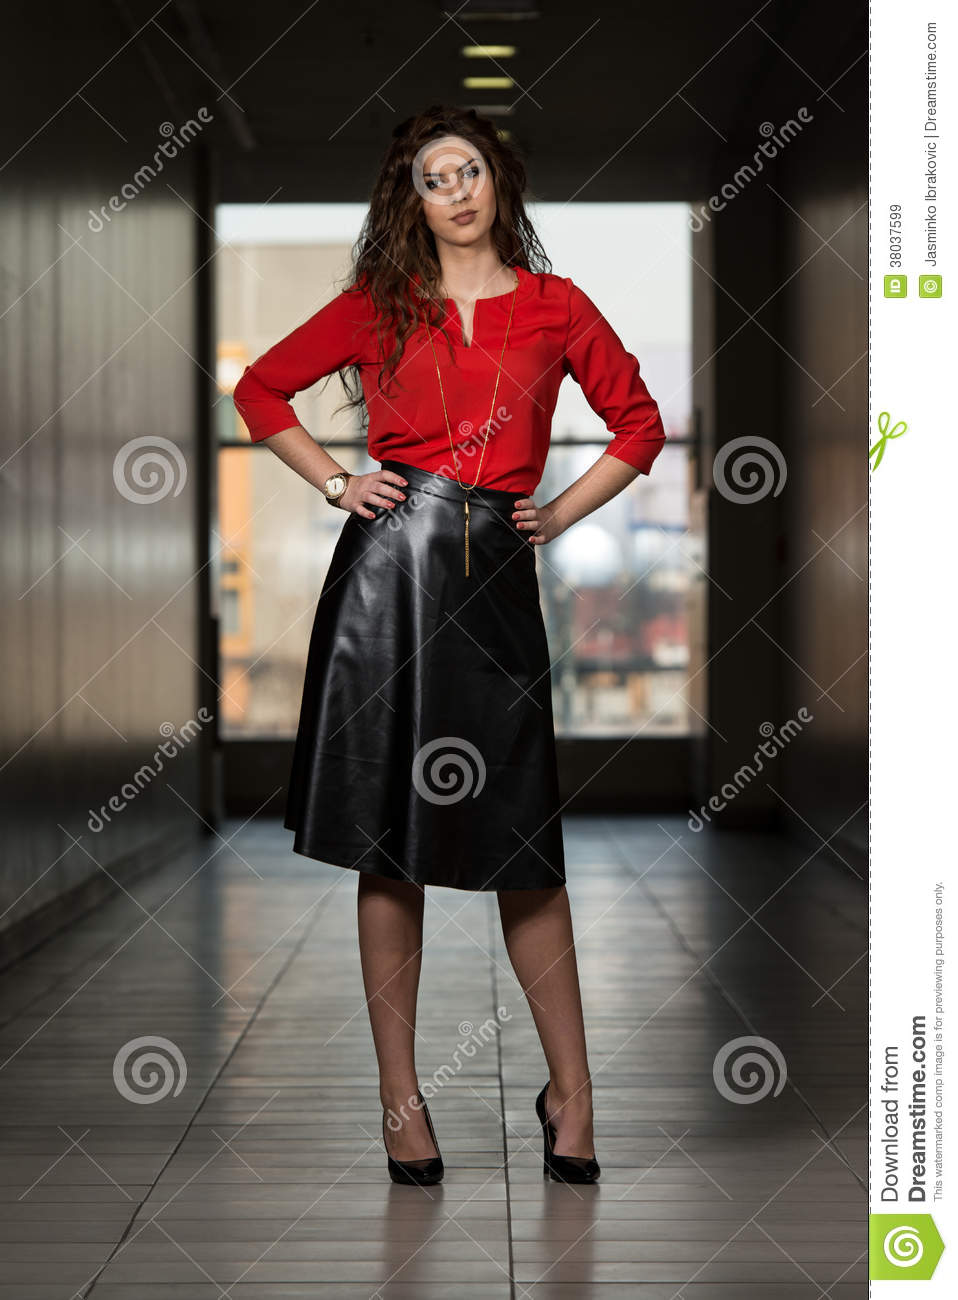 Ladies Wearing Leather Skirts - Dress Ala